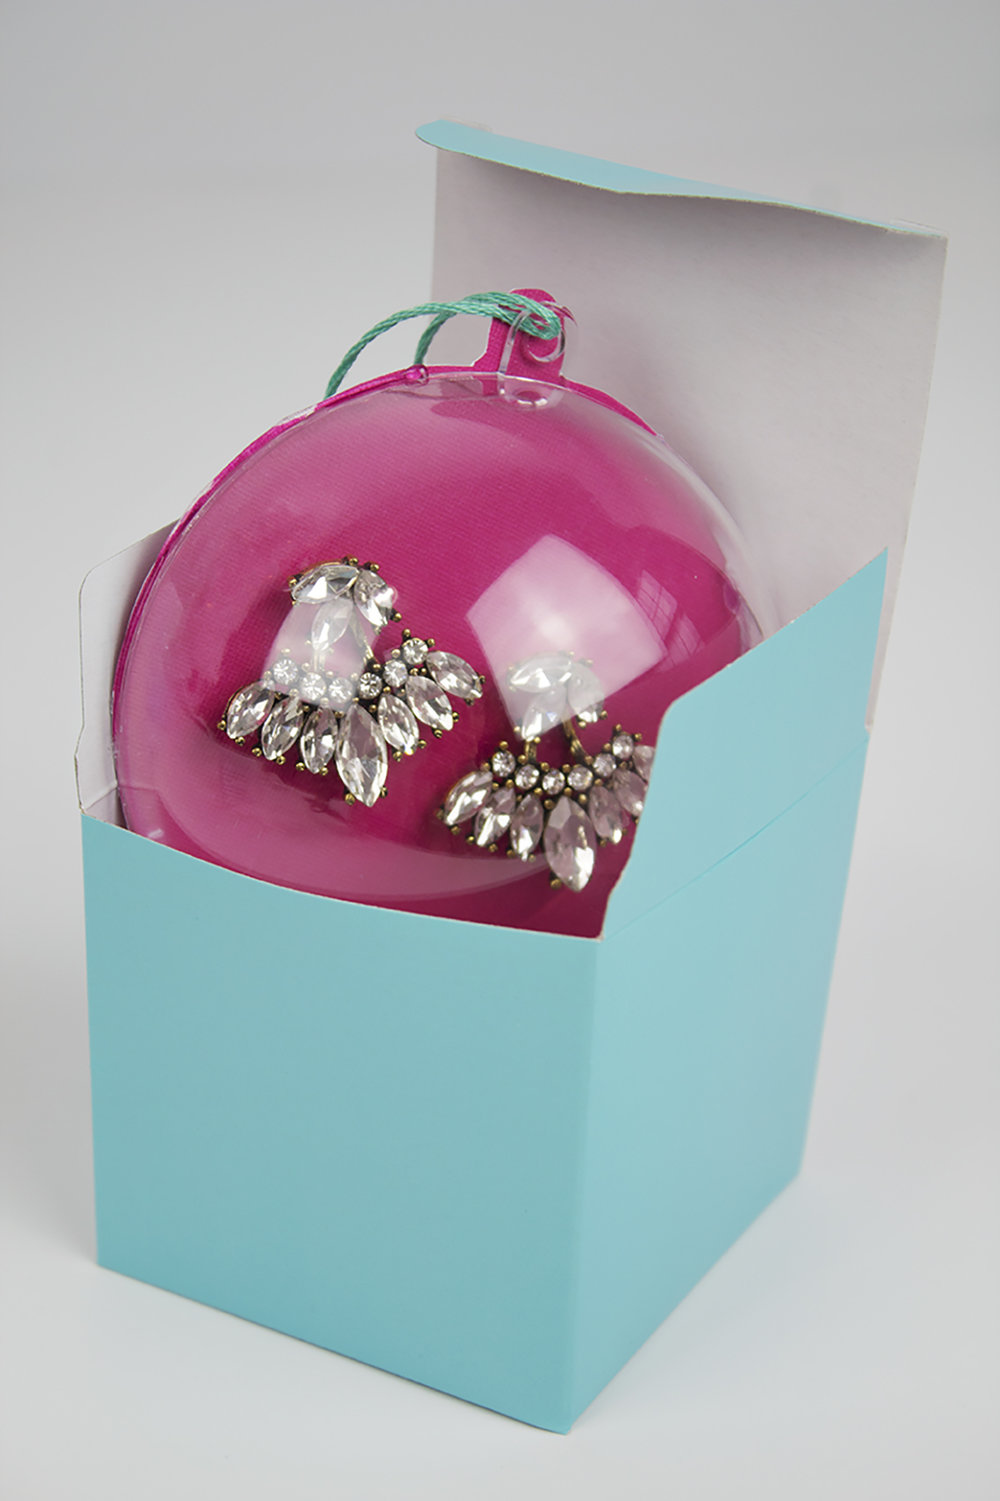 These earring ornaments are way more fun than regular ho-hum packaging, and they're super easy and affordable to do!